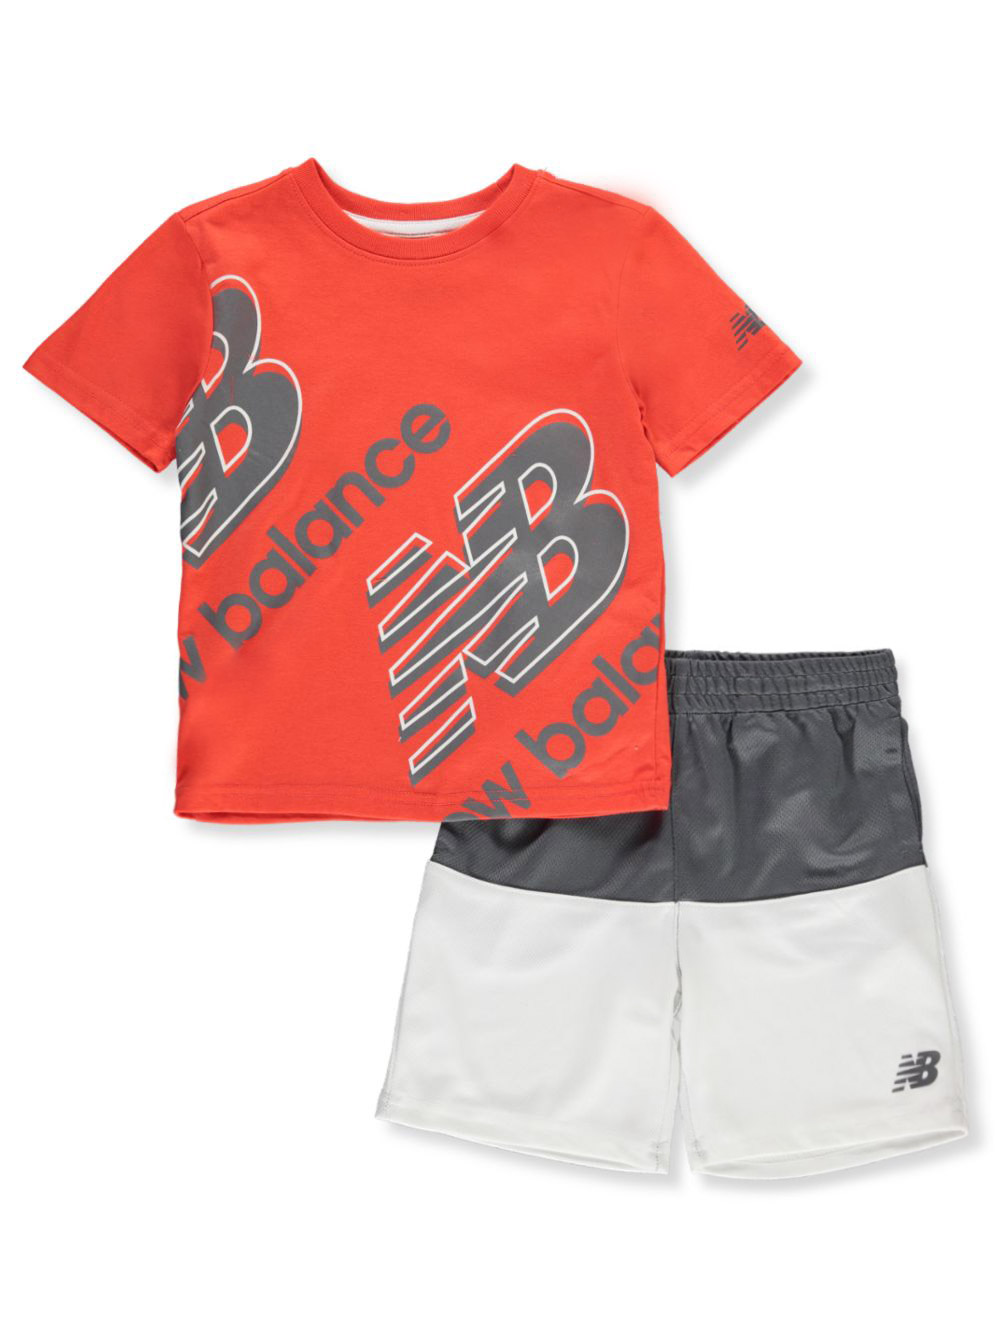 New Balance Short Sets